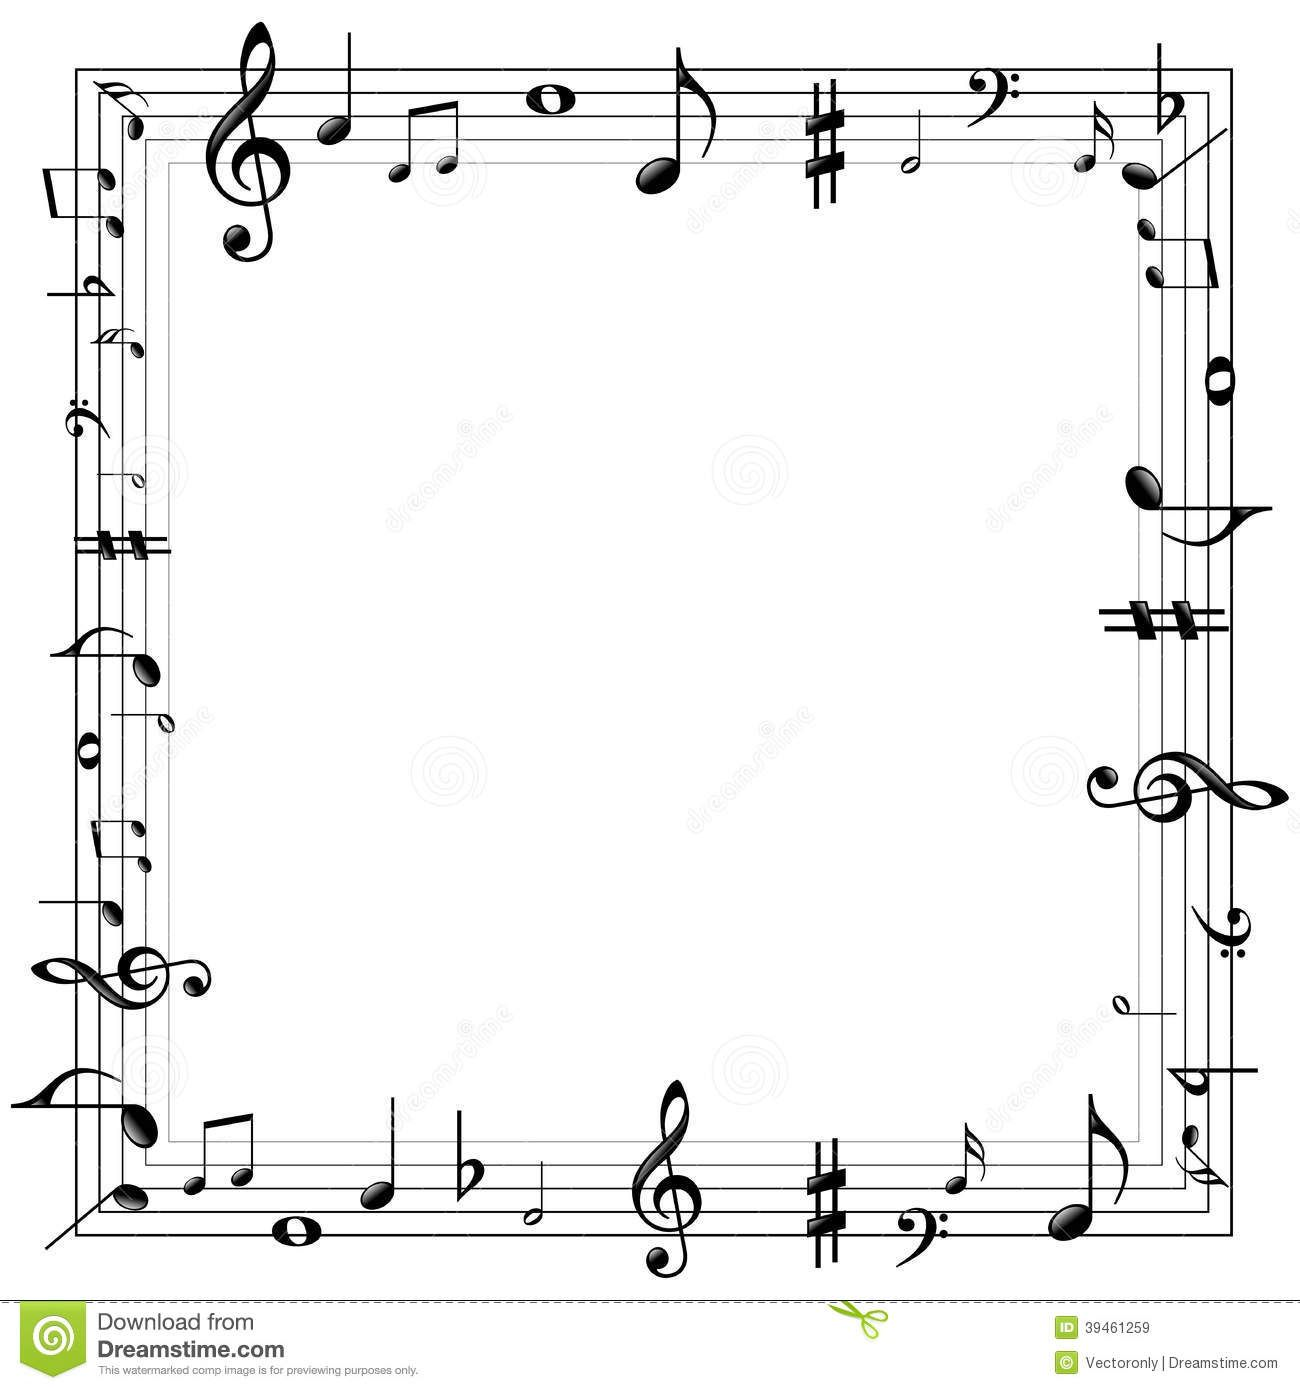 Music Notes Border Stock Vector Image: 39461259 - 1300x1390 - jpeg ...